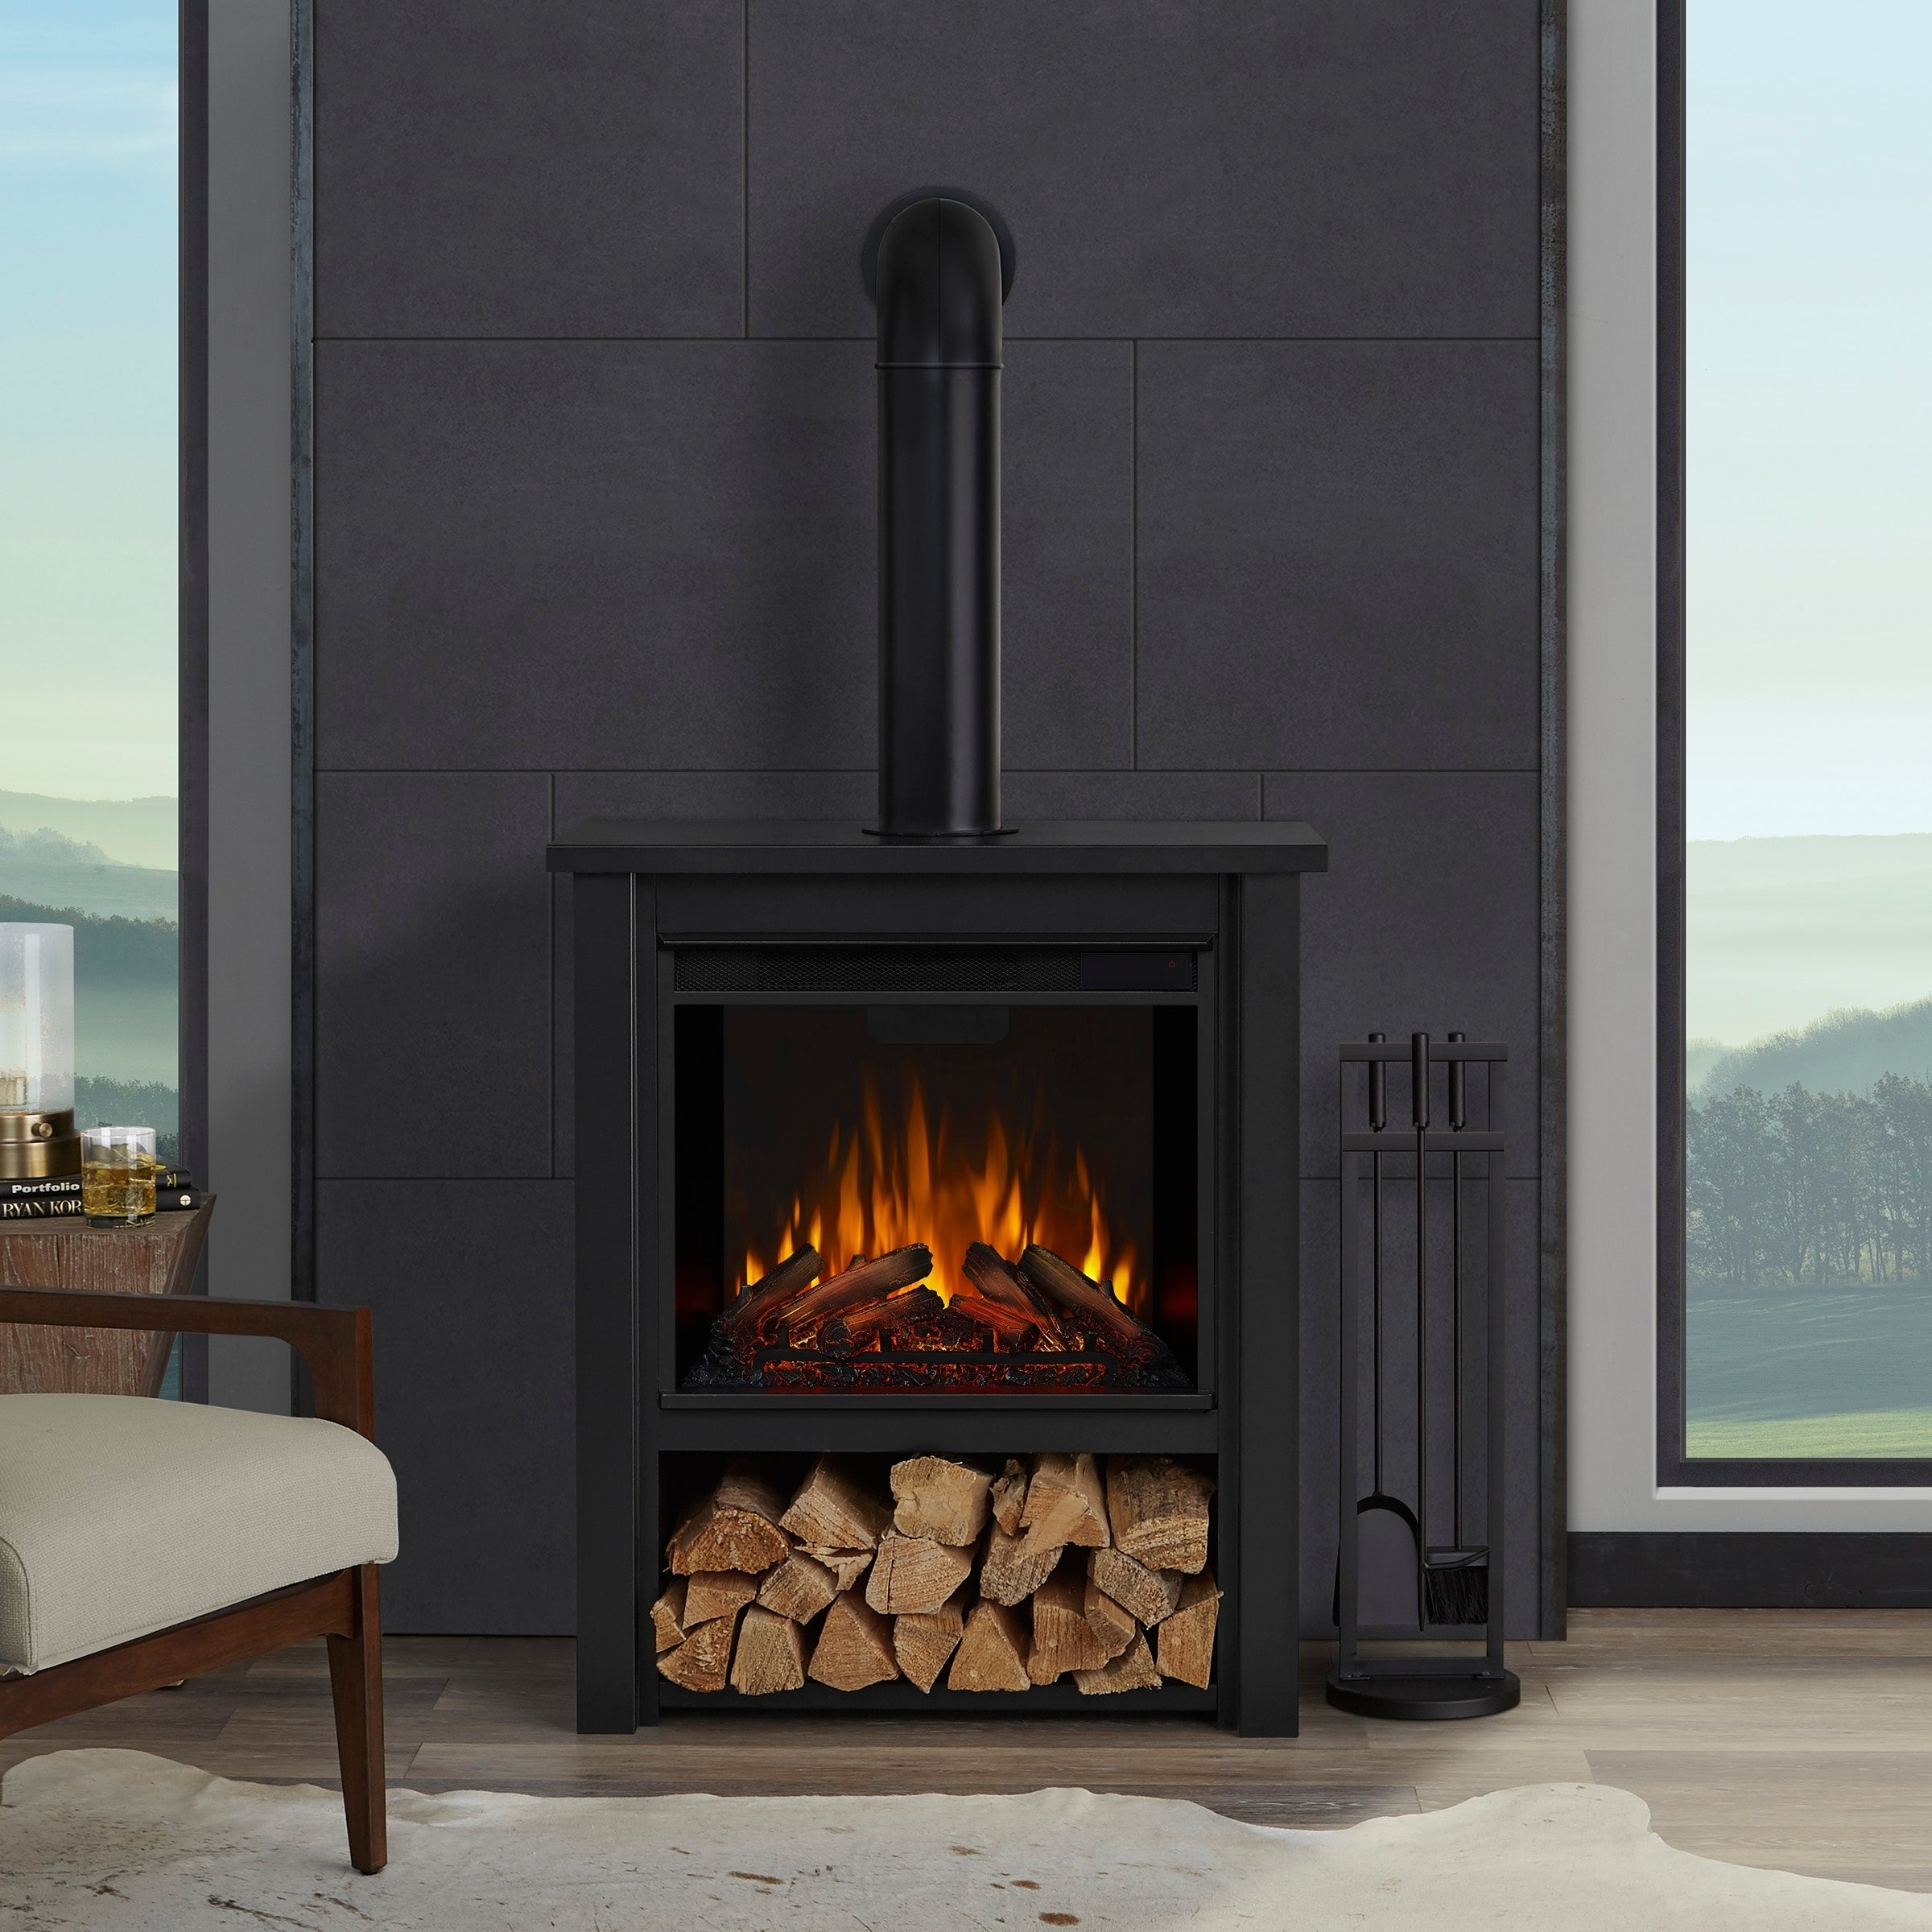 Real Flame Hollis Black Steel 17-inch Wide x 32-inch Long Electric Fireplace | eBay